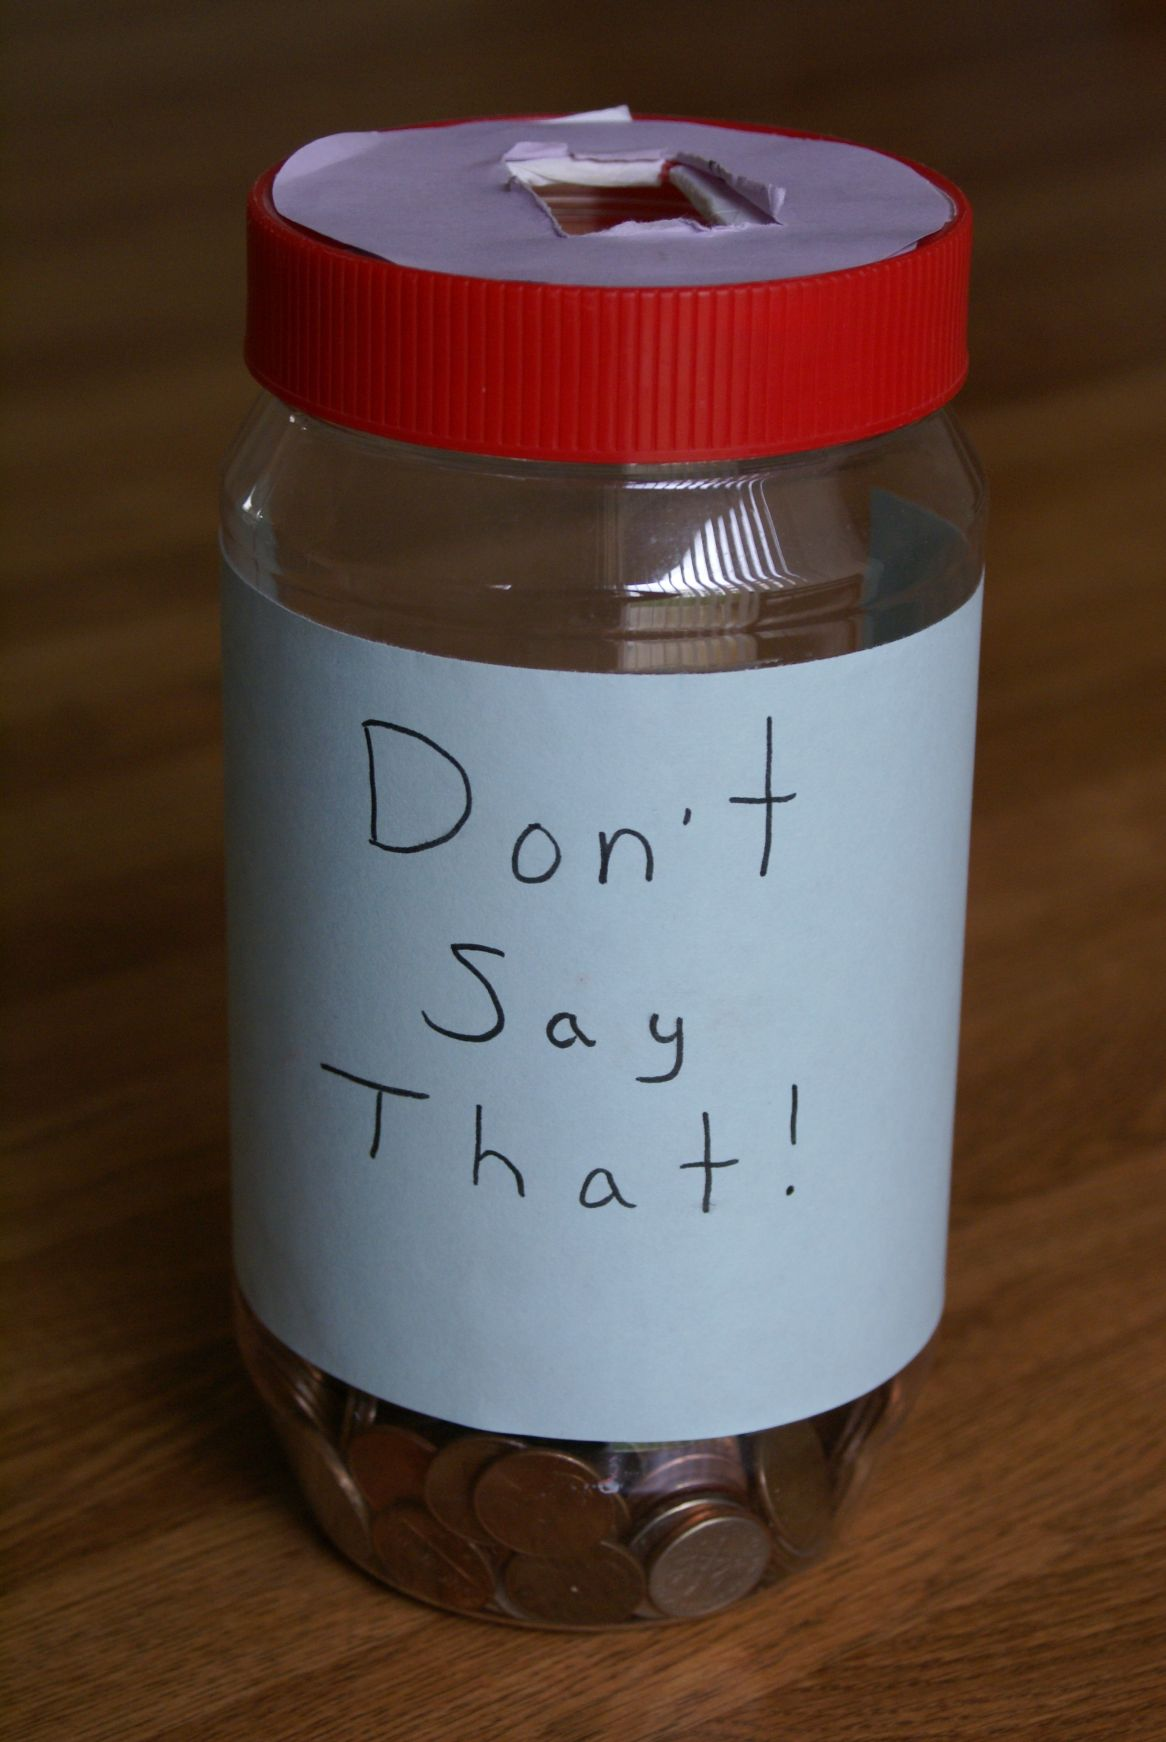 Don't Say That Jar [Photo by jppi]